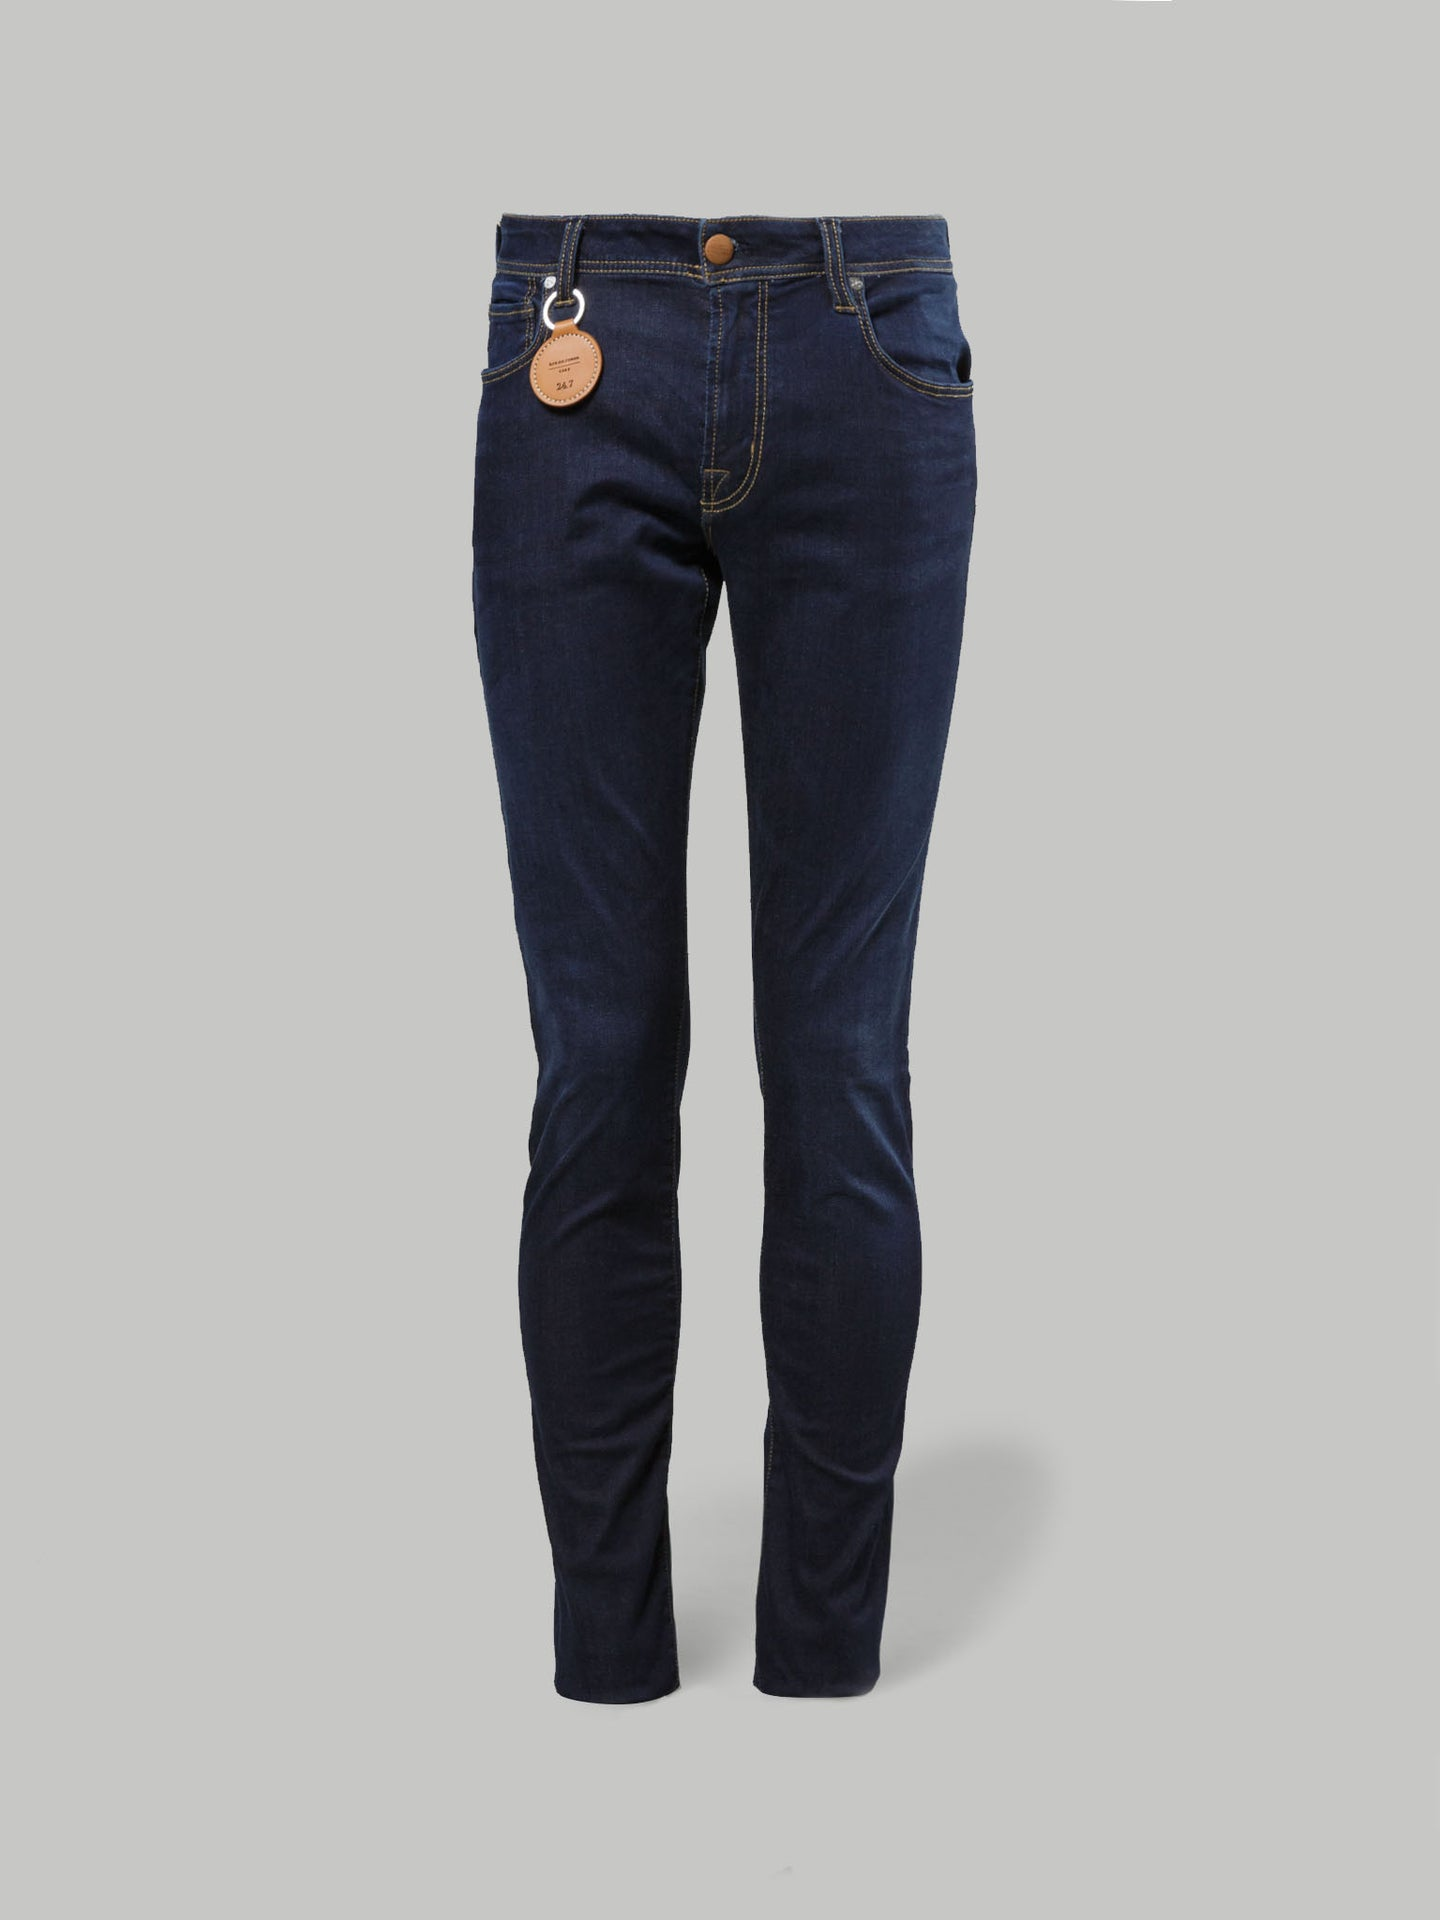 Tramarossa Leonardo Slim Fit 6 Month Jean Stretch (Indigo)